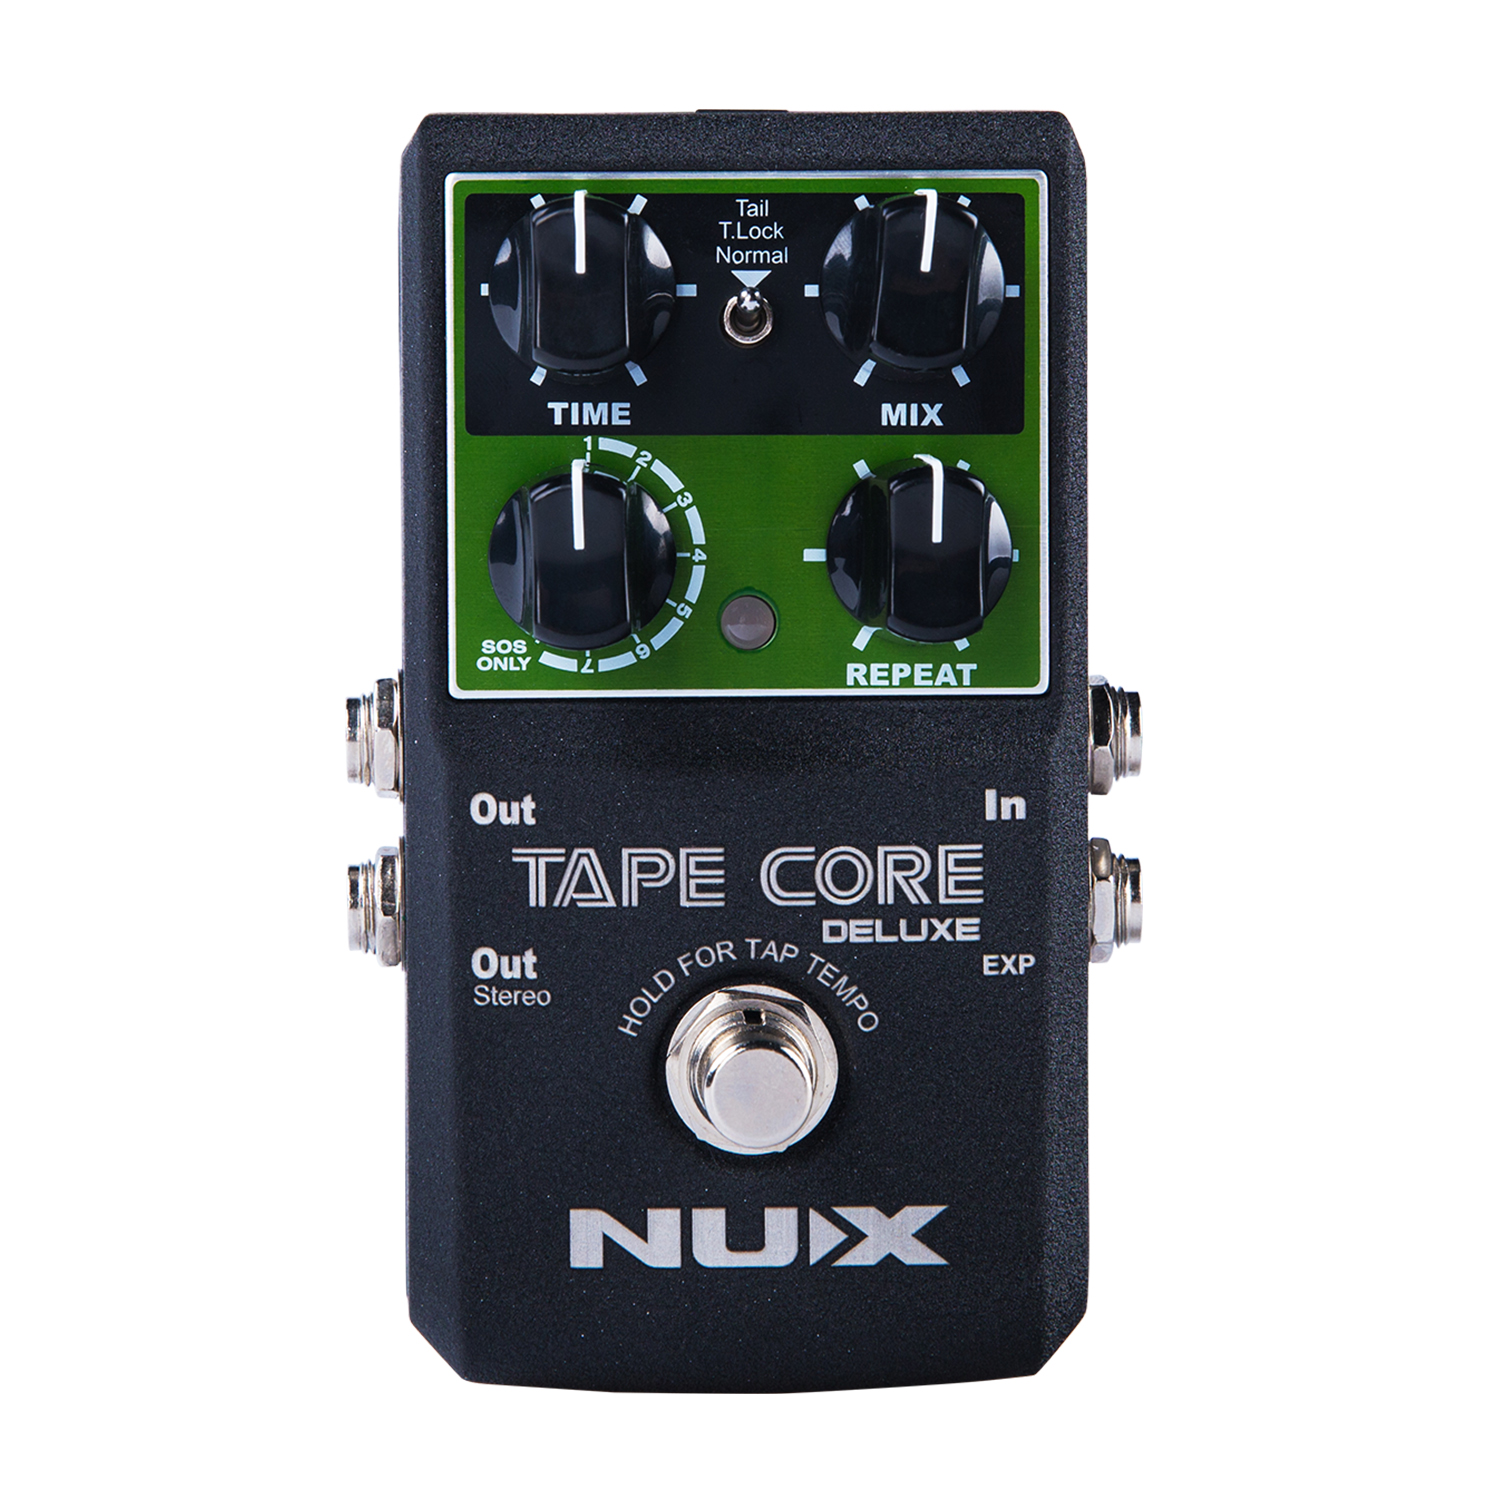 NUX Tape Core Deluxe Tape Echo Guitar Effect Pedal 3 Repro Head 7 Delay Sound Compact Stomp Box  Natural Sound Decay Modulation nux time core deluxe delay pedal different types of delays to the upmost ambience